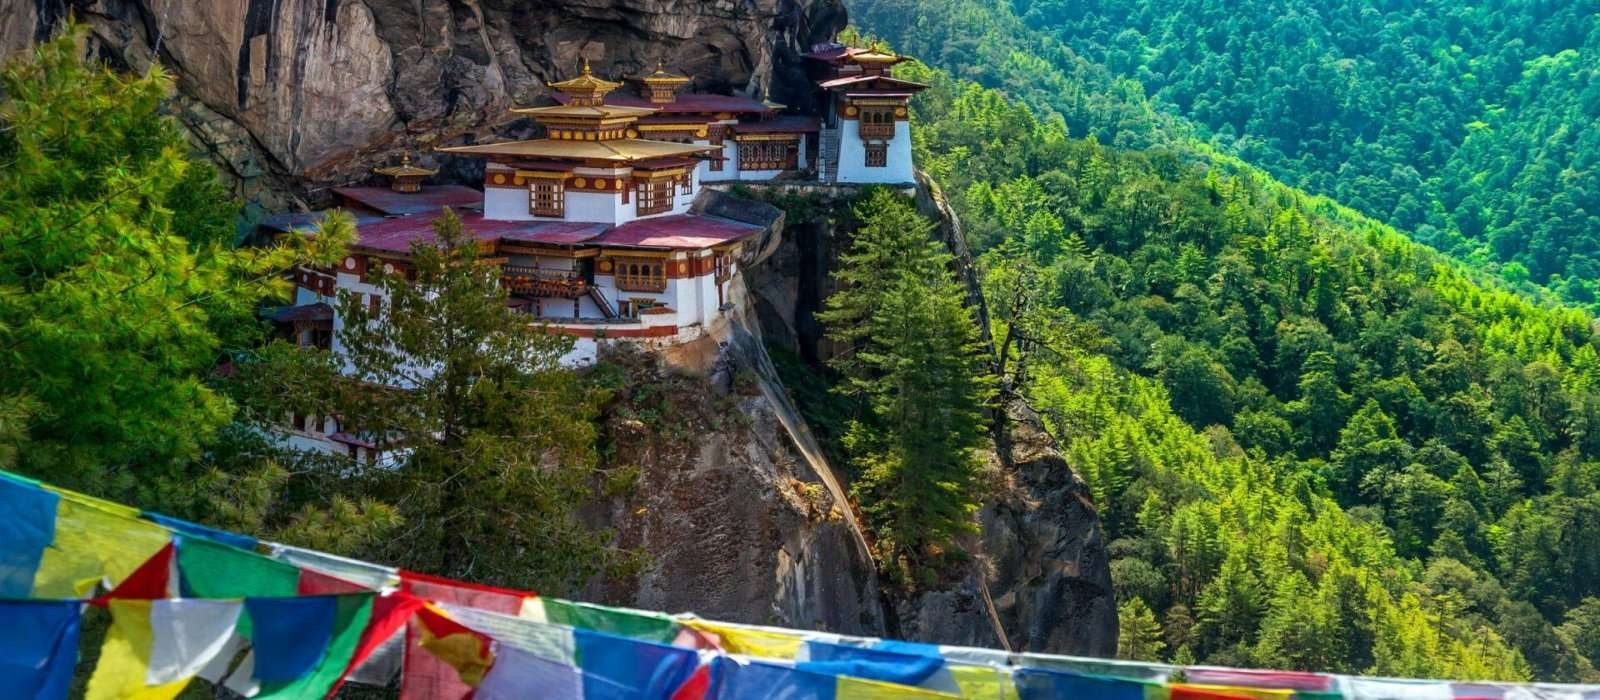 How to get Bhutan from Nepal